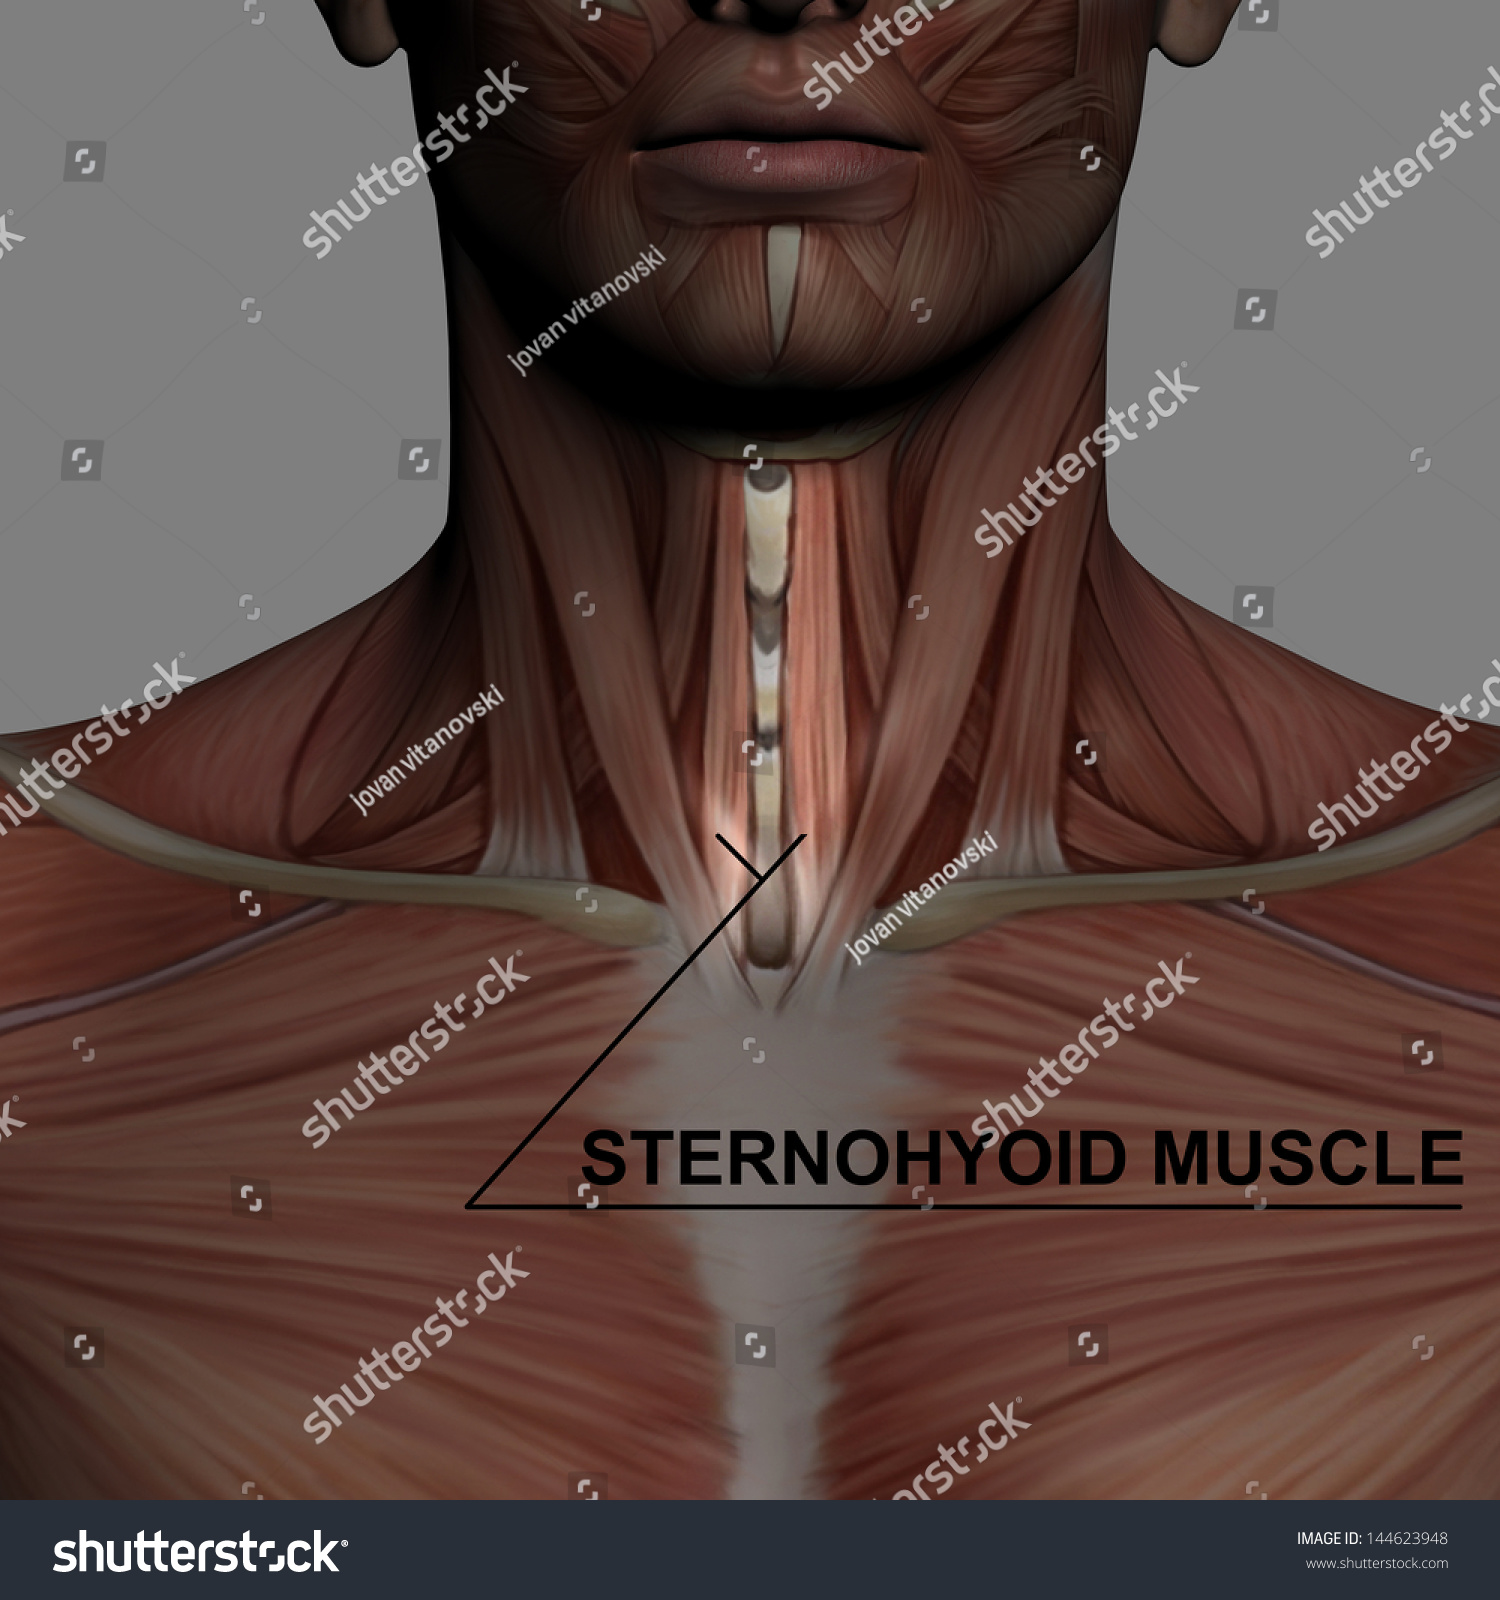 Human Anatomy Male Muscles Made 3 D Stock Illustration 144623948 ...